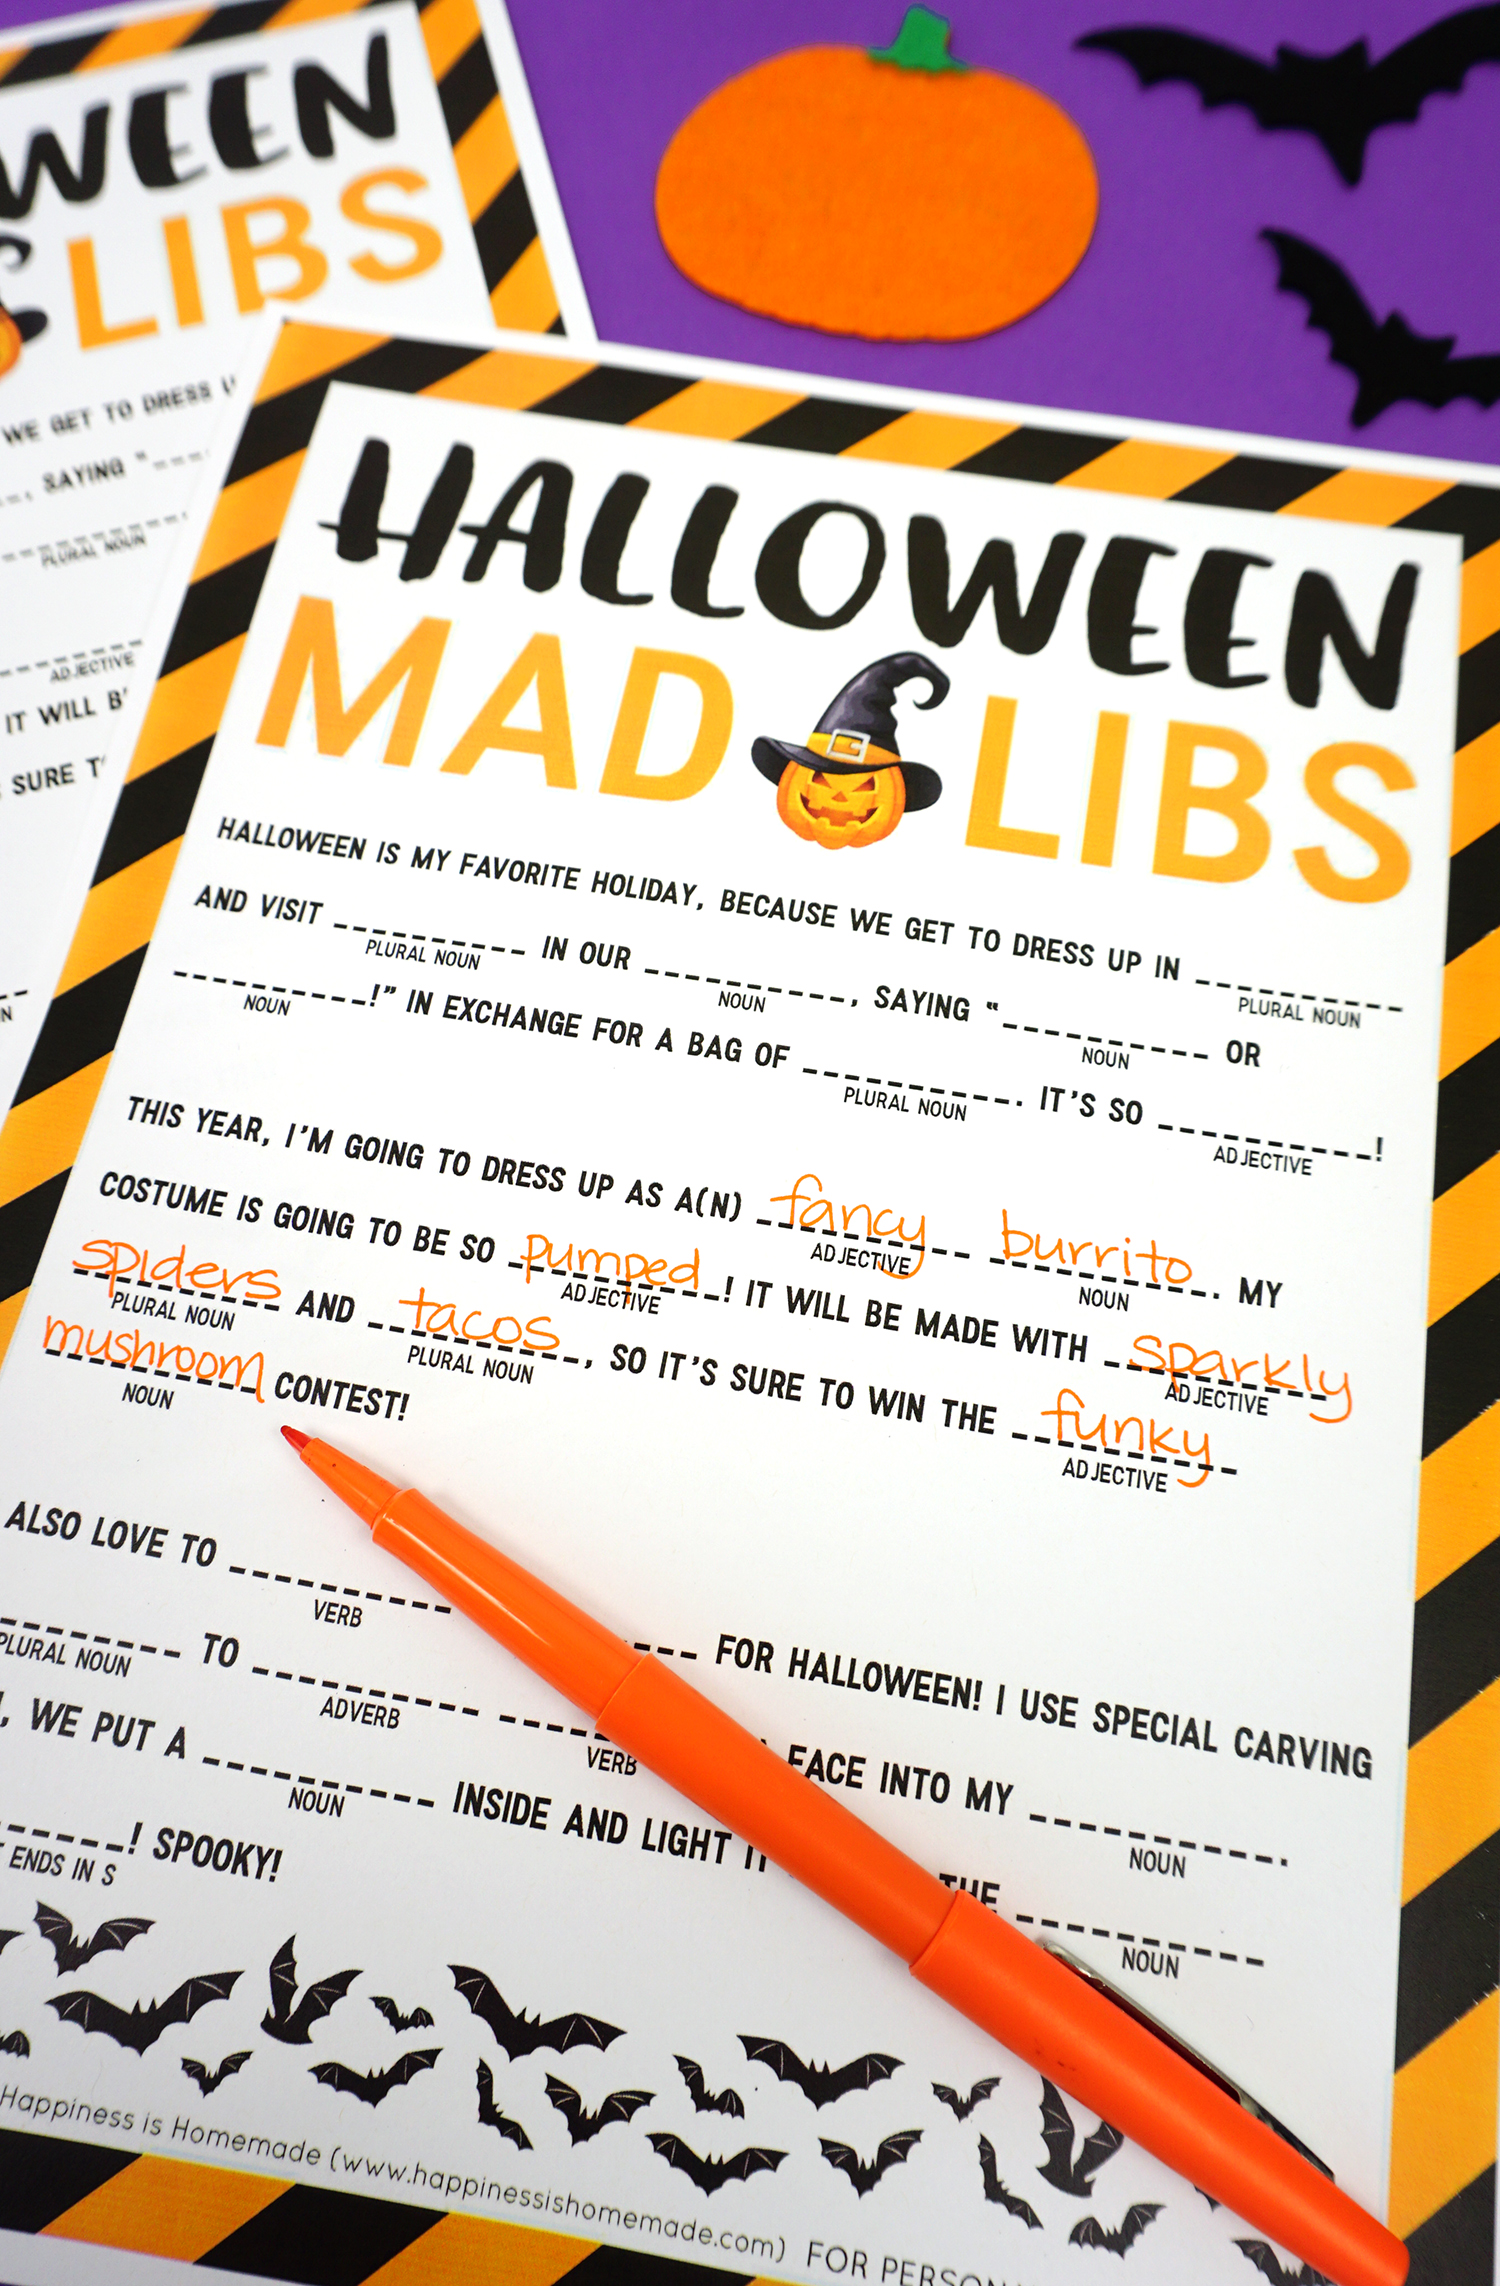 photograph regarding Printable Funny Mad Libs identify Halloween Ridiculous Libs Printable - Pleasure is Do-it-yourself